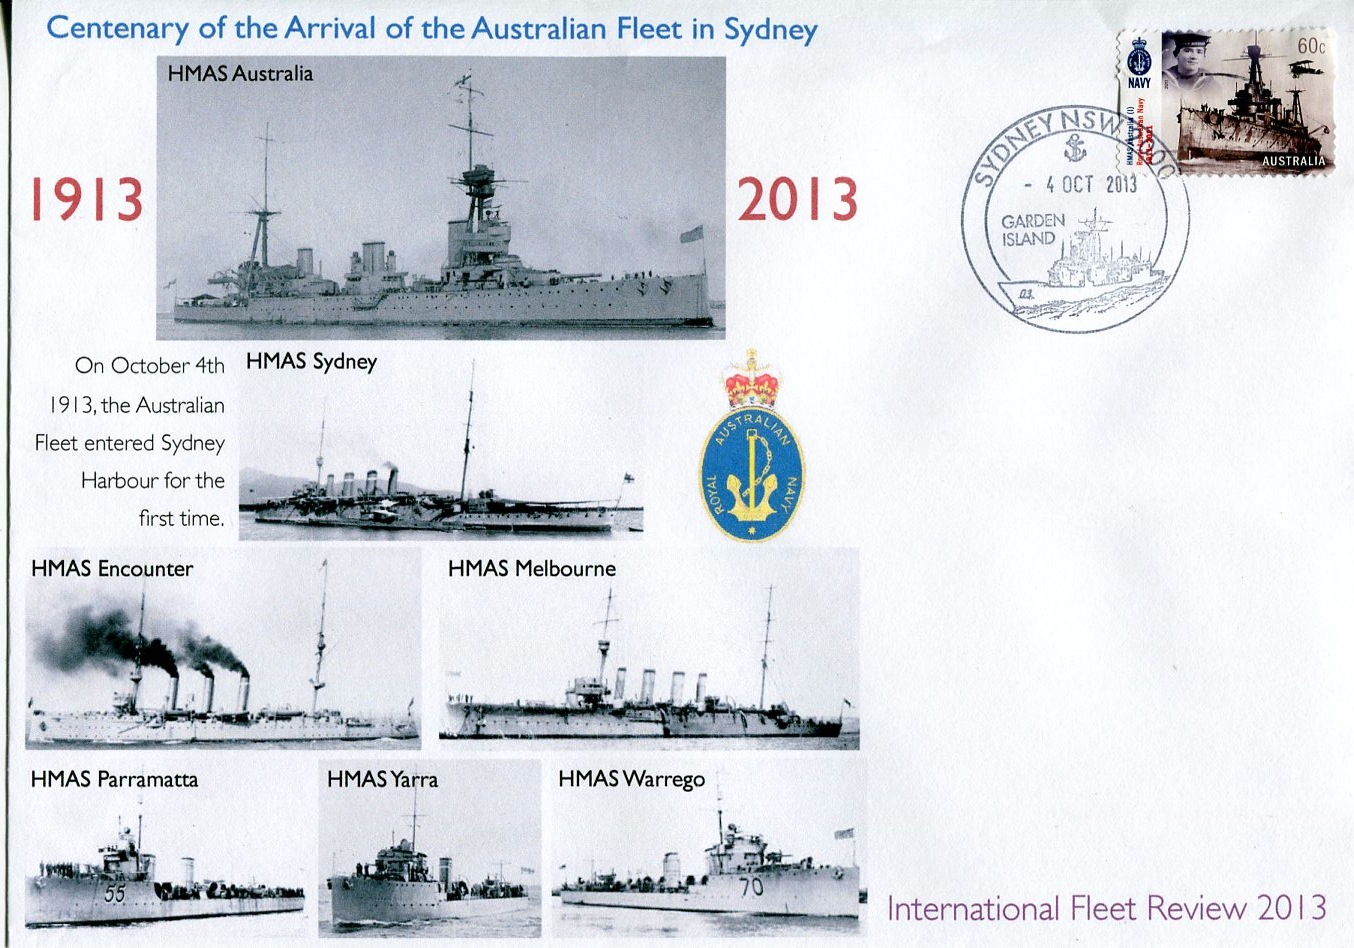 Centenary of the arrival of the Australian Fleet in Sydney